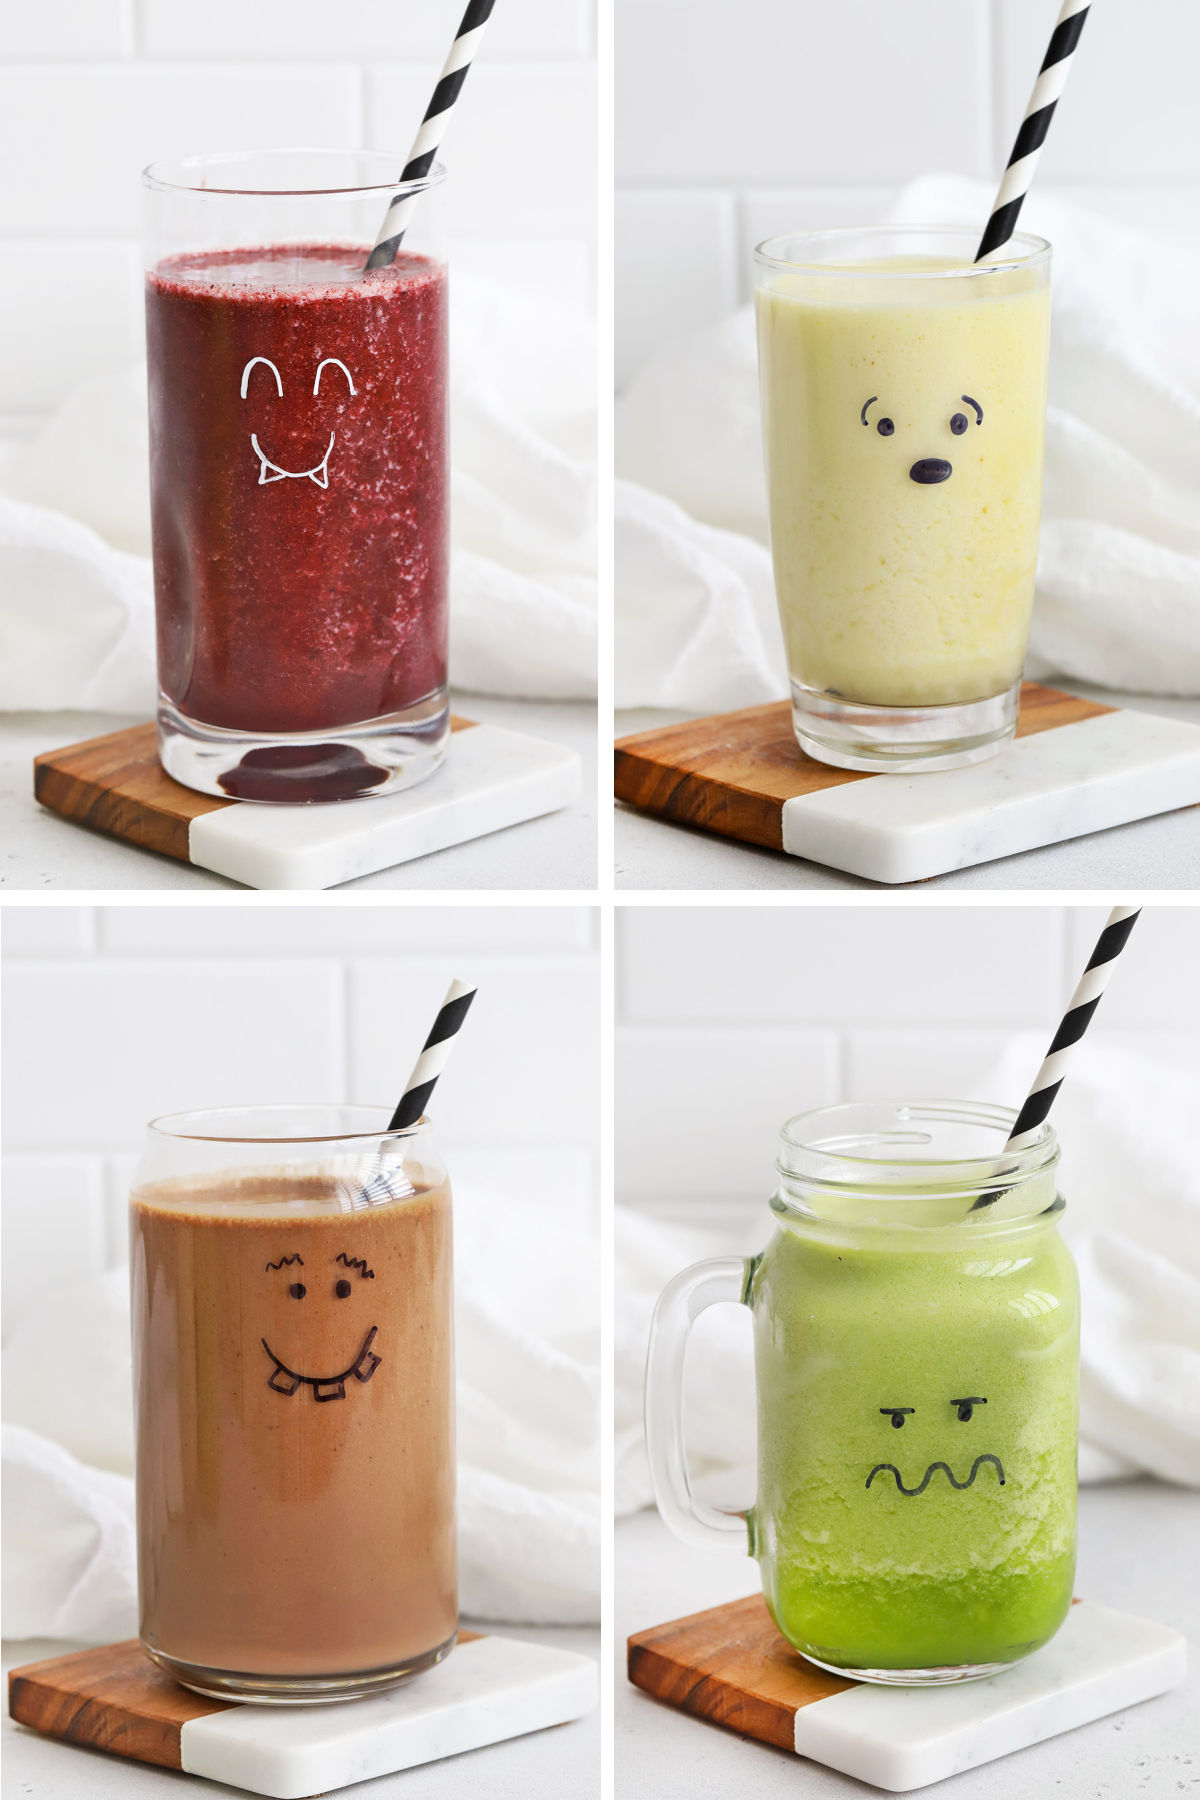 Collage of images of smoothies in glass cups with monster faces drawn on them